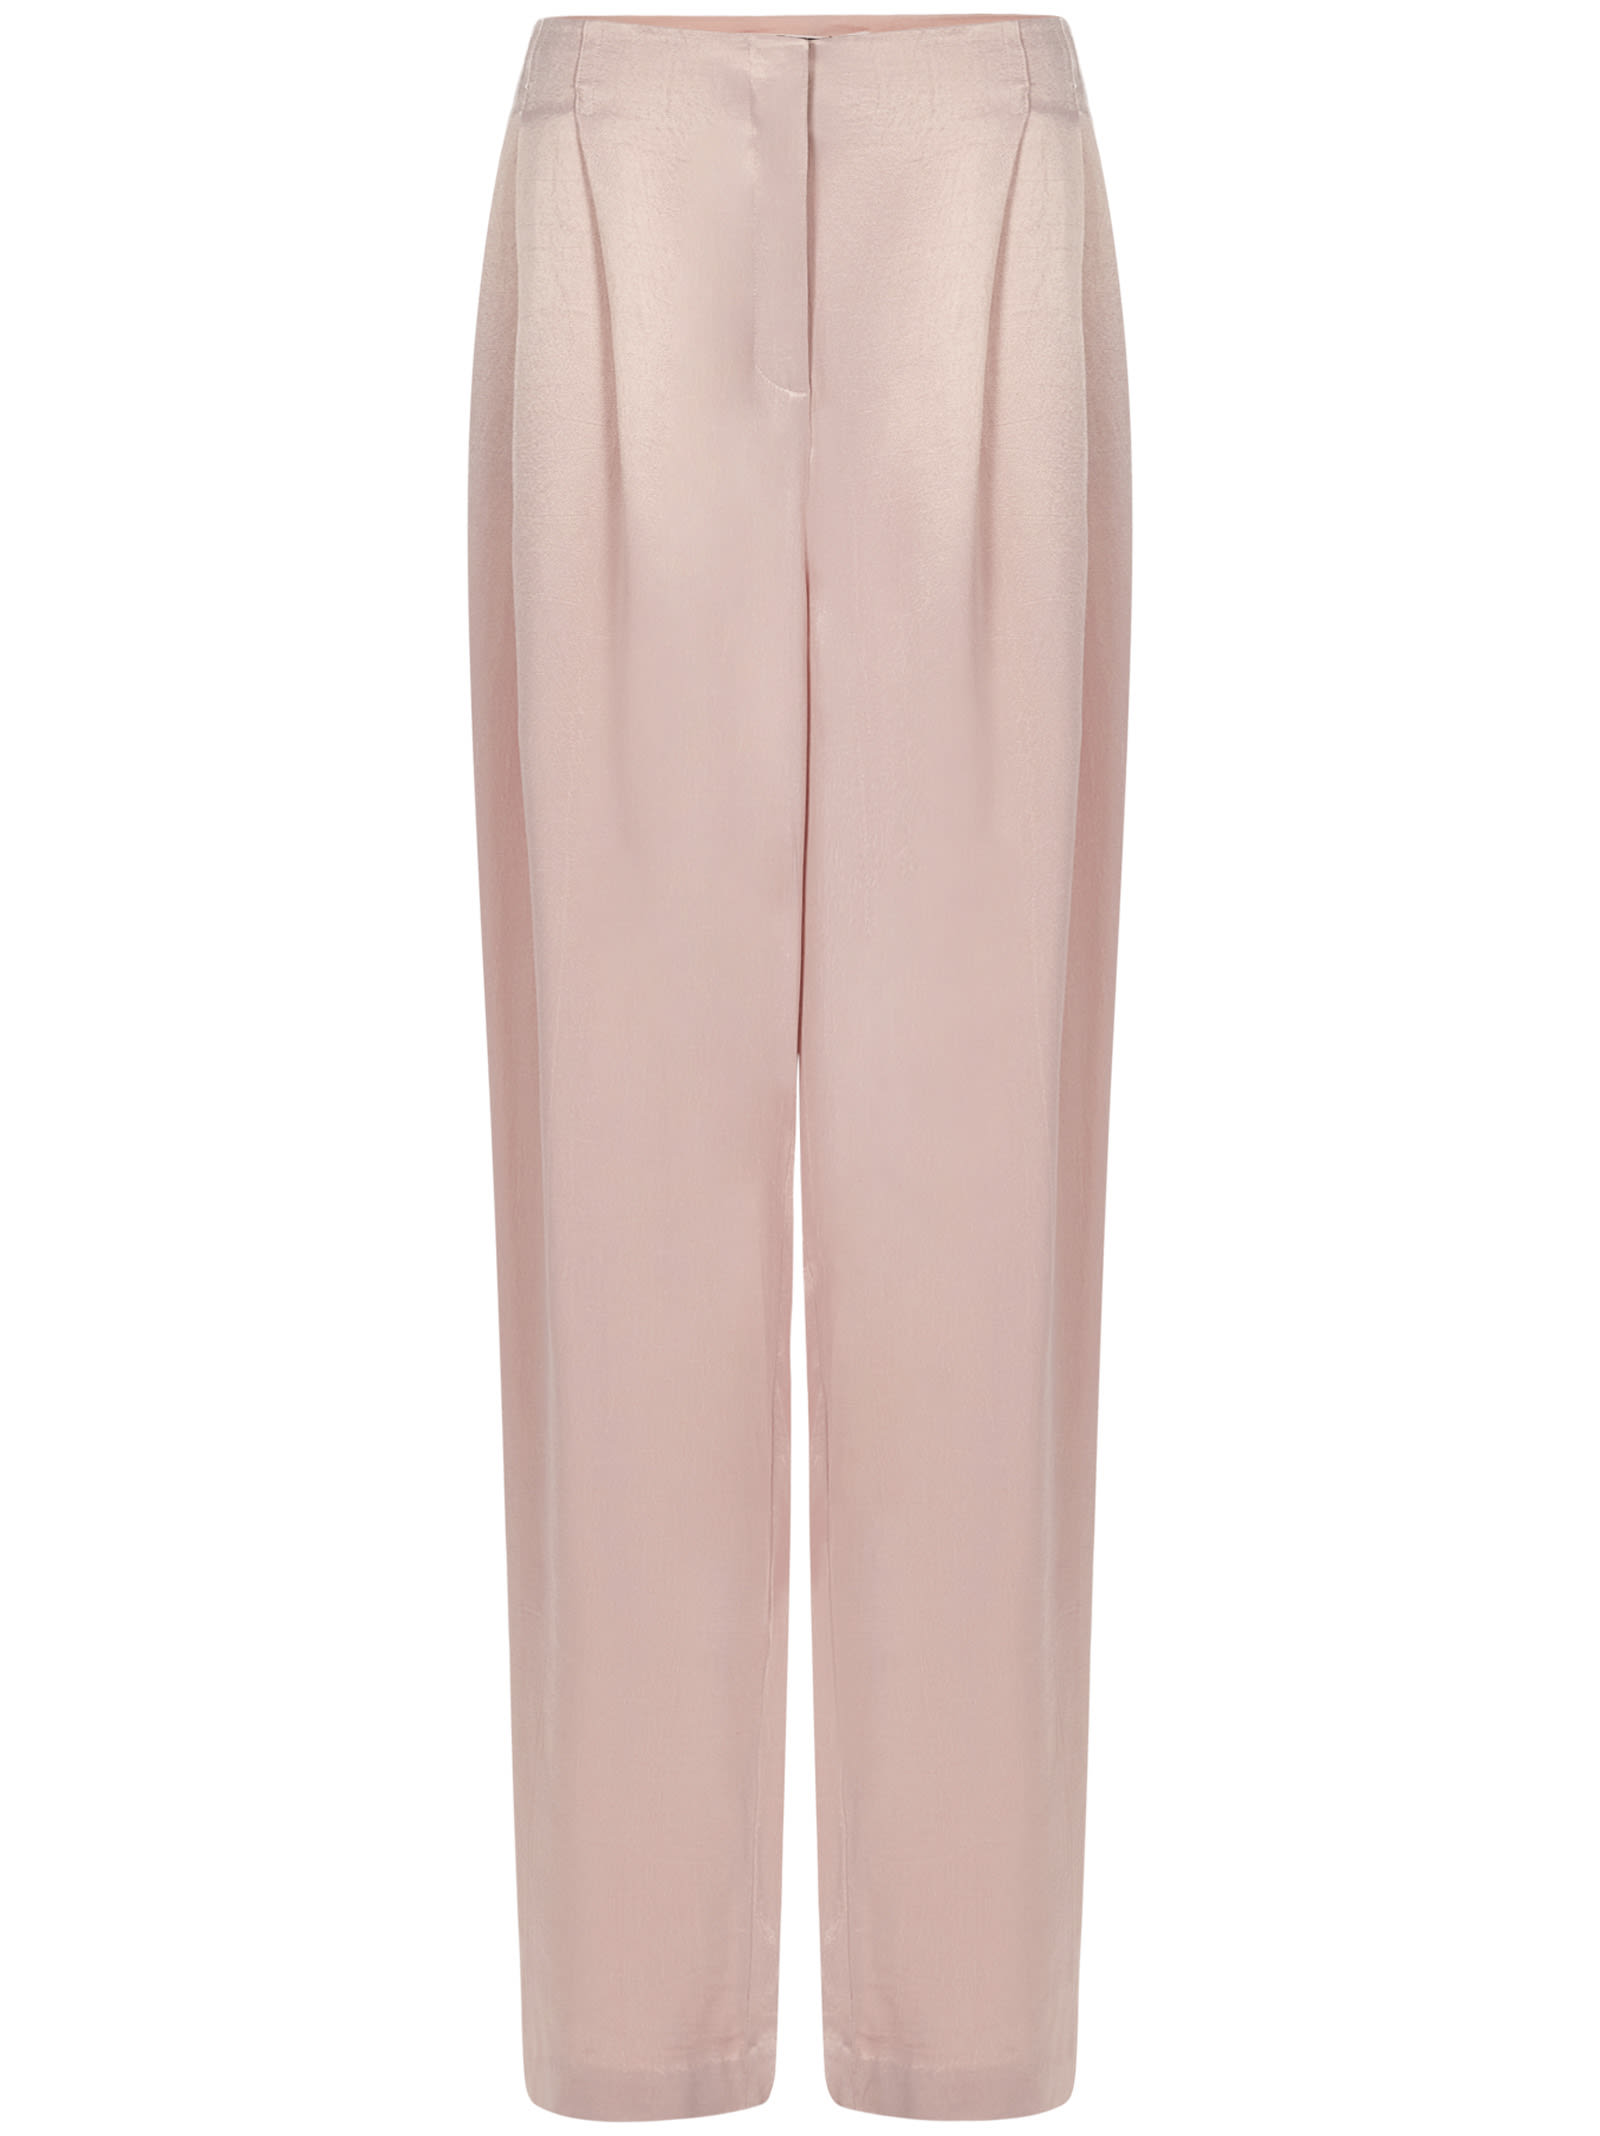 Rotate by Birger Christensen Rotate Trousers